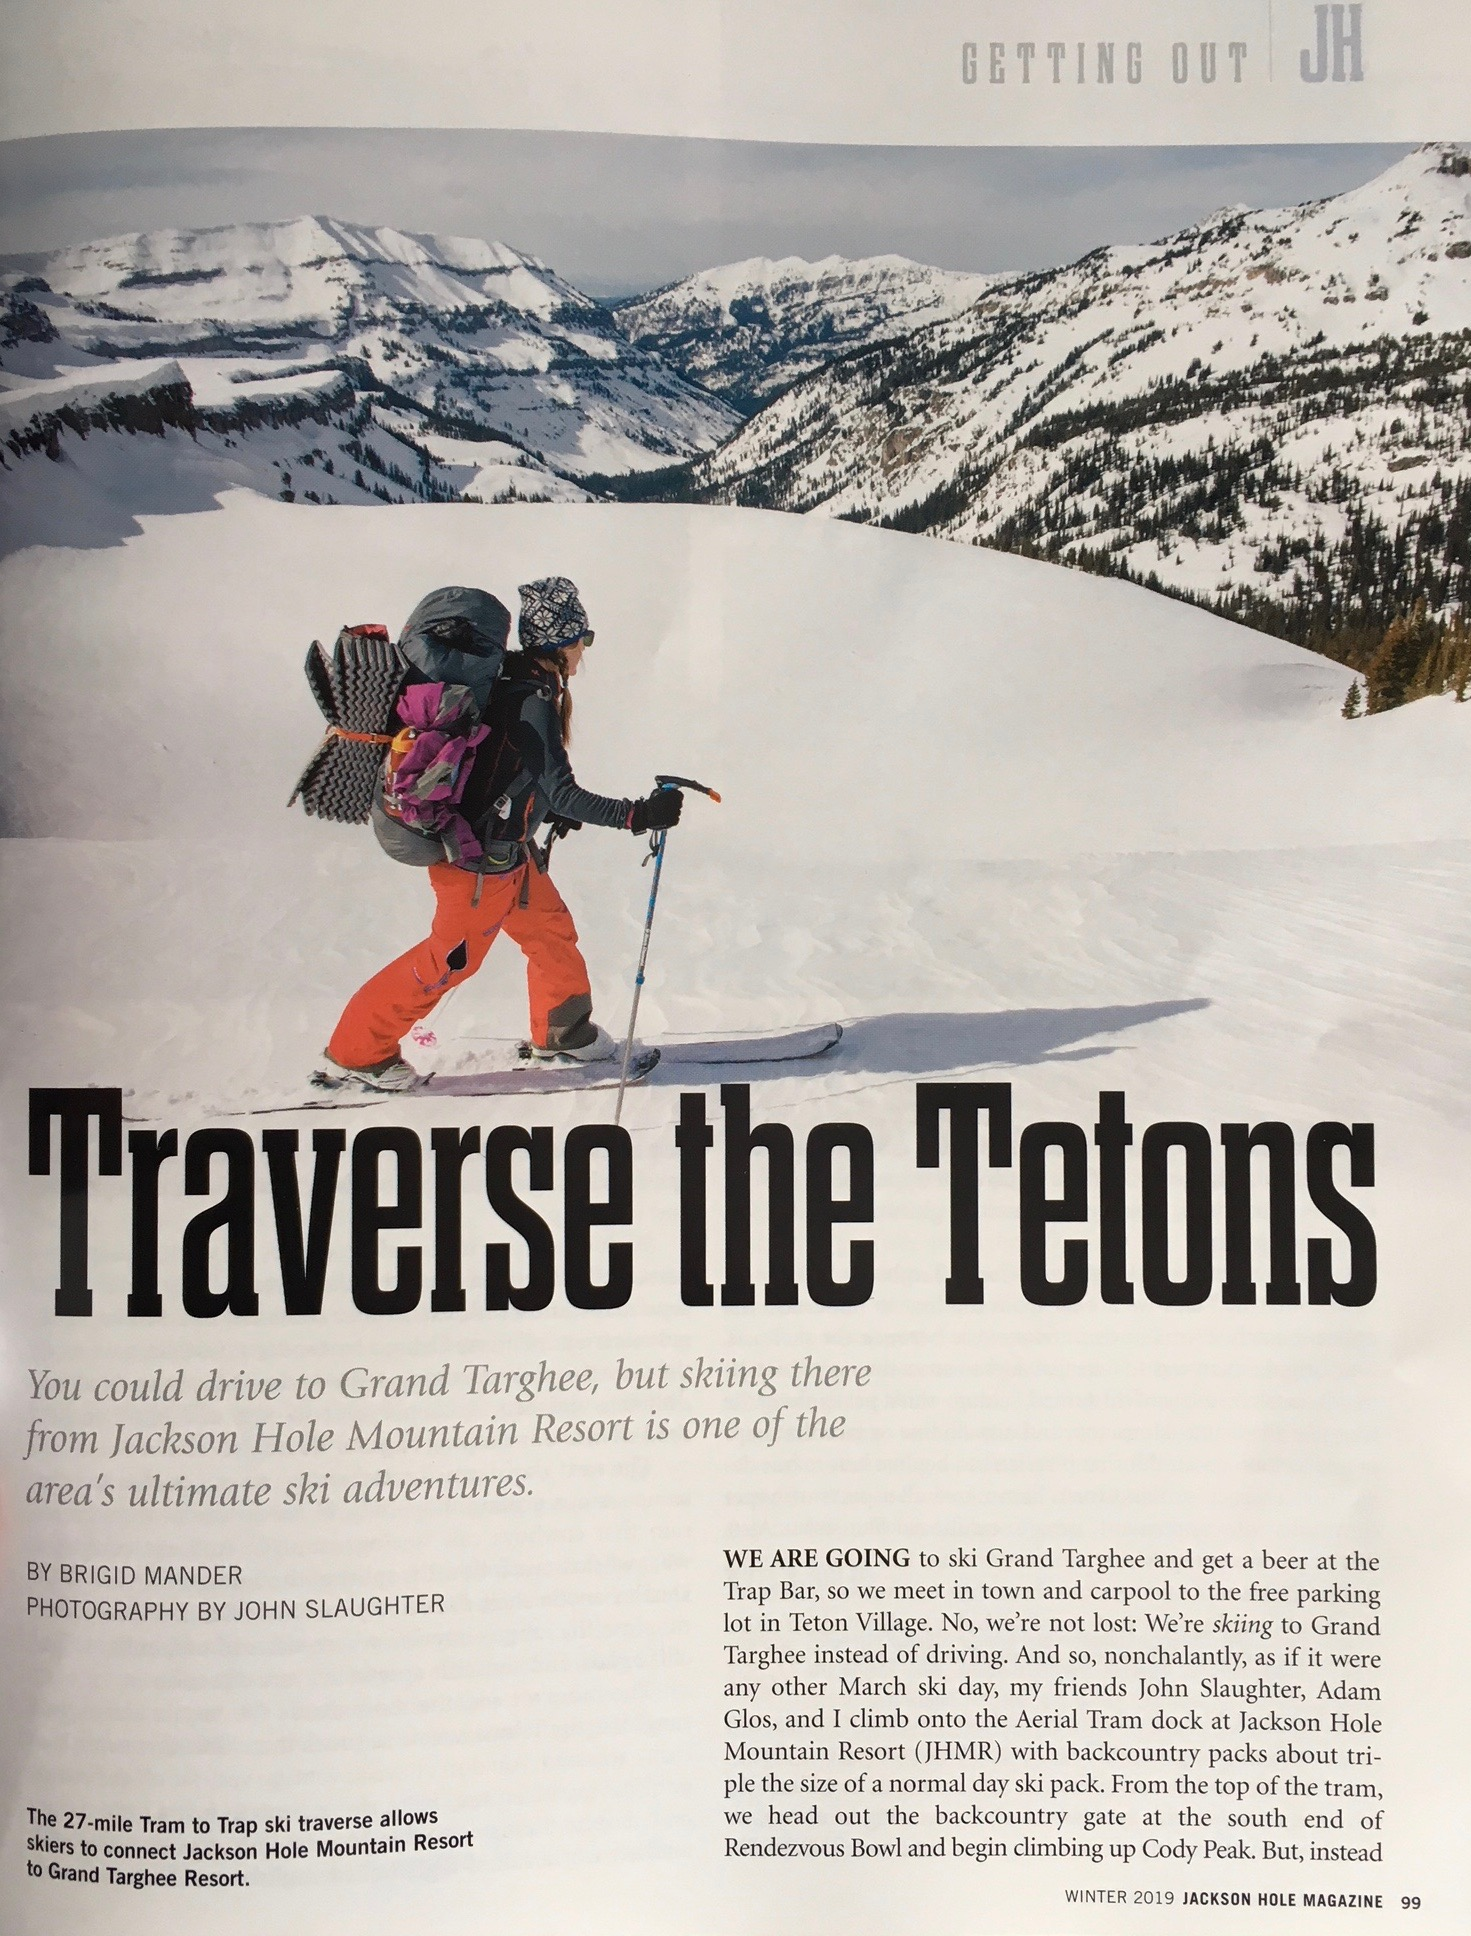 Jackson Hole Magazine, Winter 2018-2019    A story about a multi-day freeski traverse I took with two friends, across the Teton Range from Jackson Hole Mountain Resort to Grand Targhee.